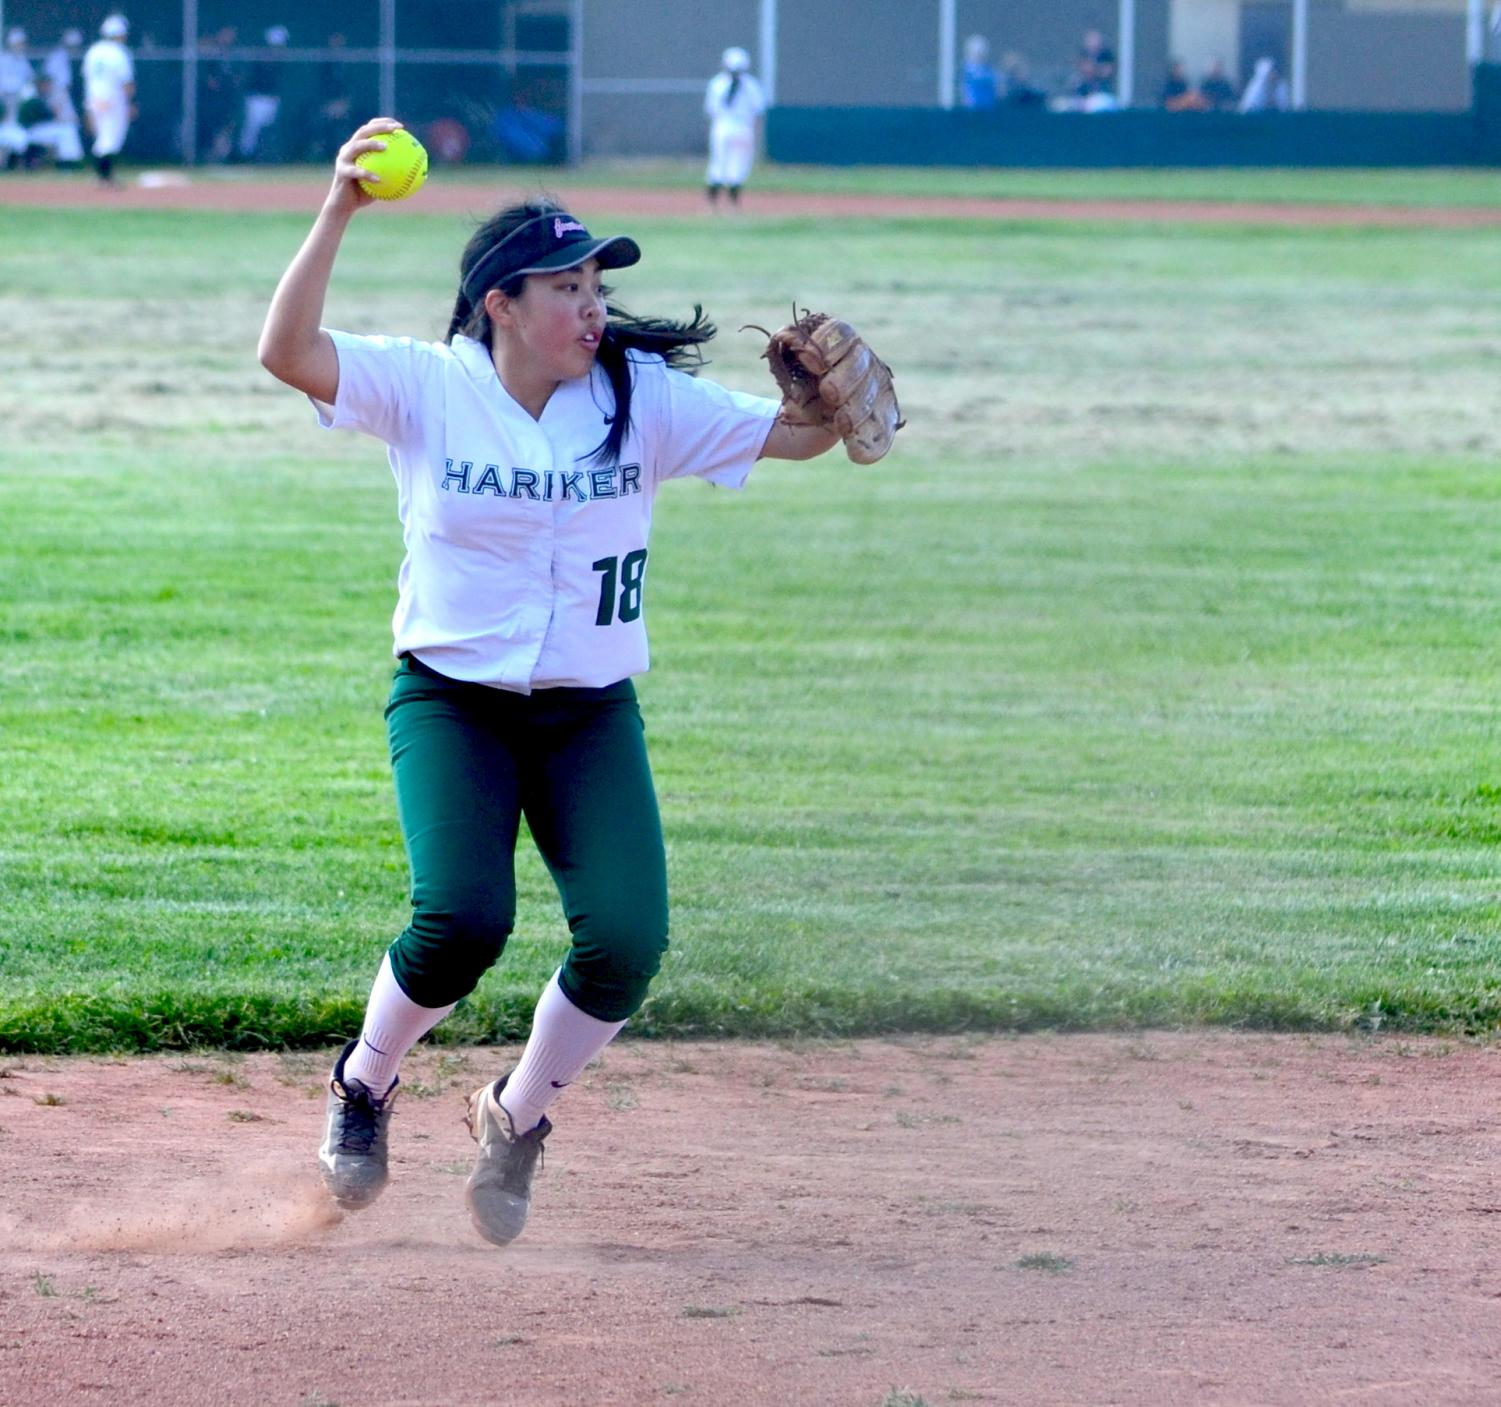 Taylor Lam (12) throws a ball to second base in a game against El Camino High. The Eagles won the game 14-11.